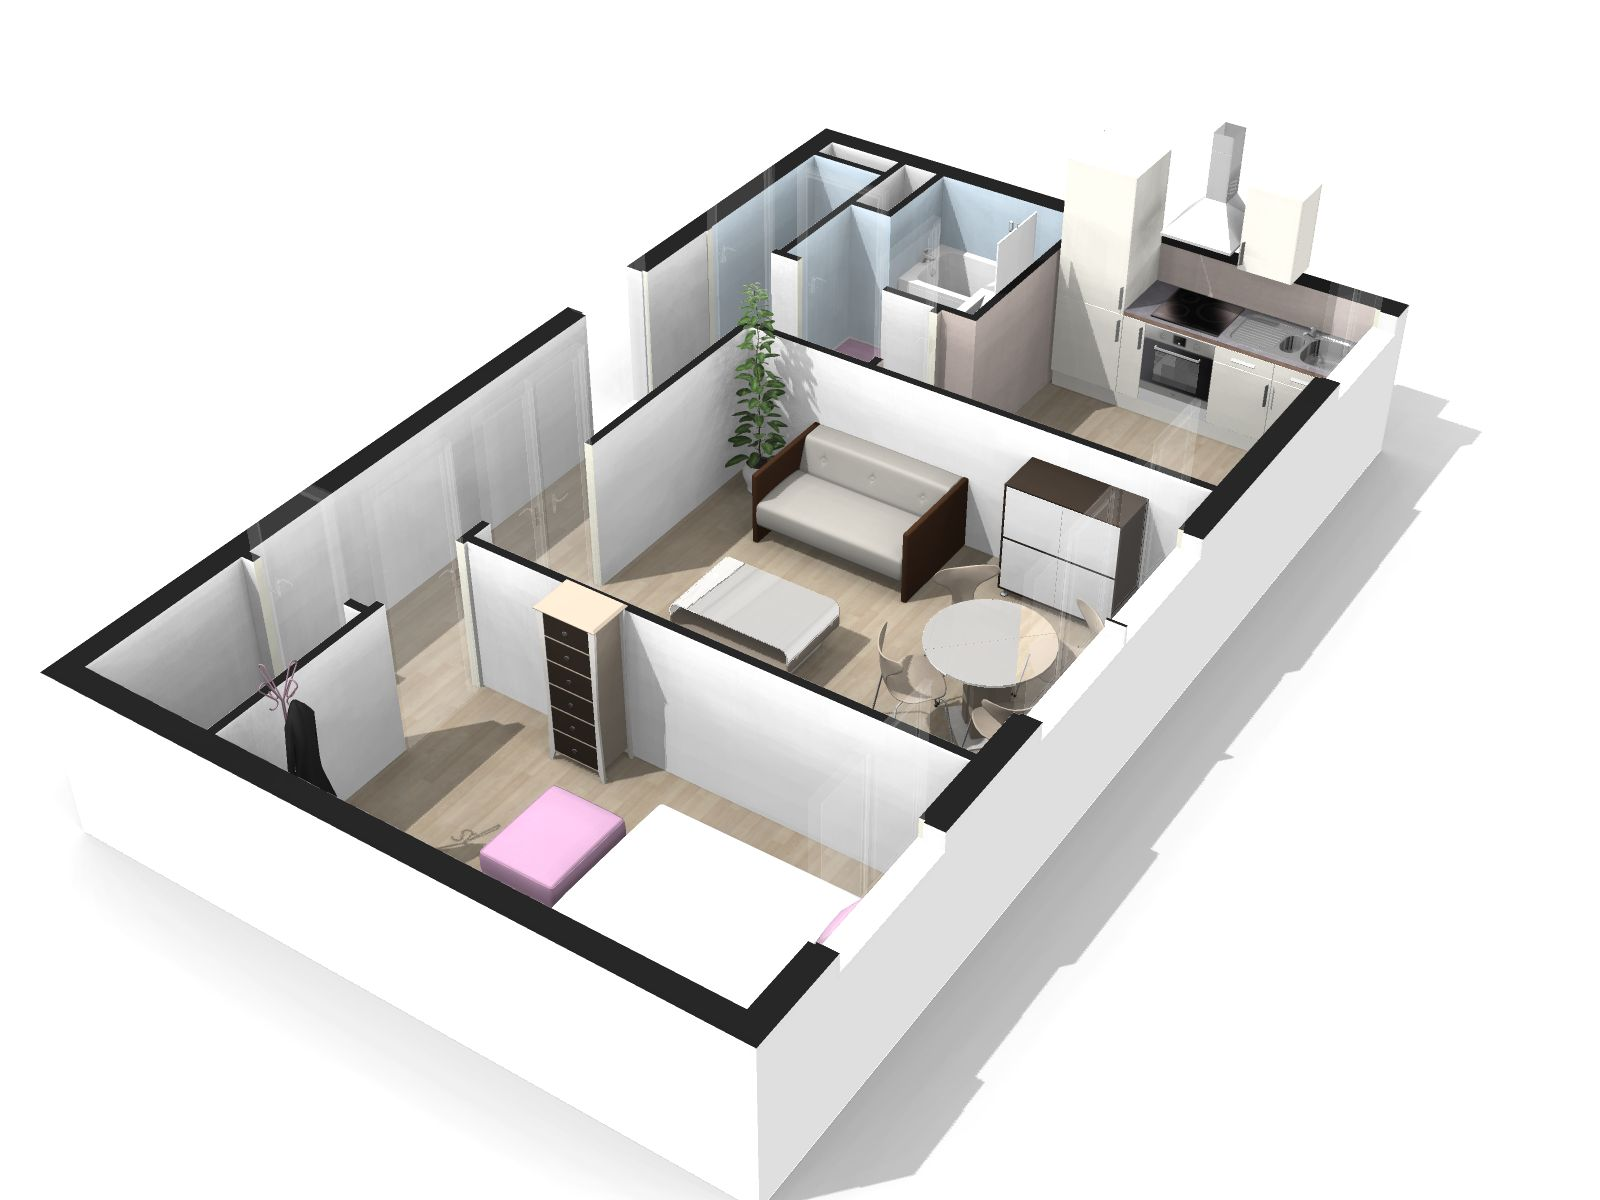 Plan de maison 3d gratuit telecharger for Plans en 3d